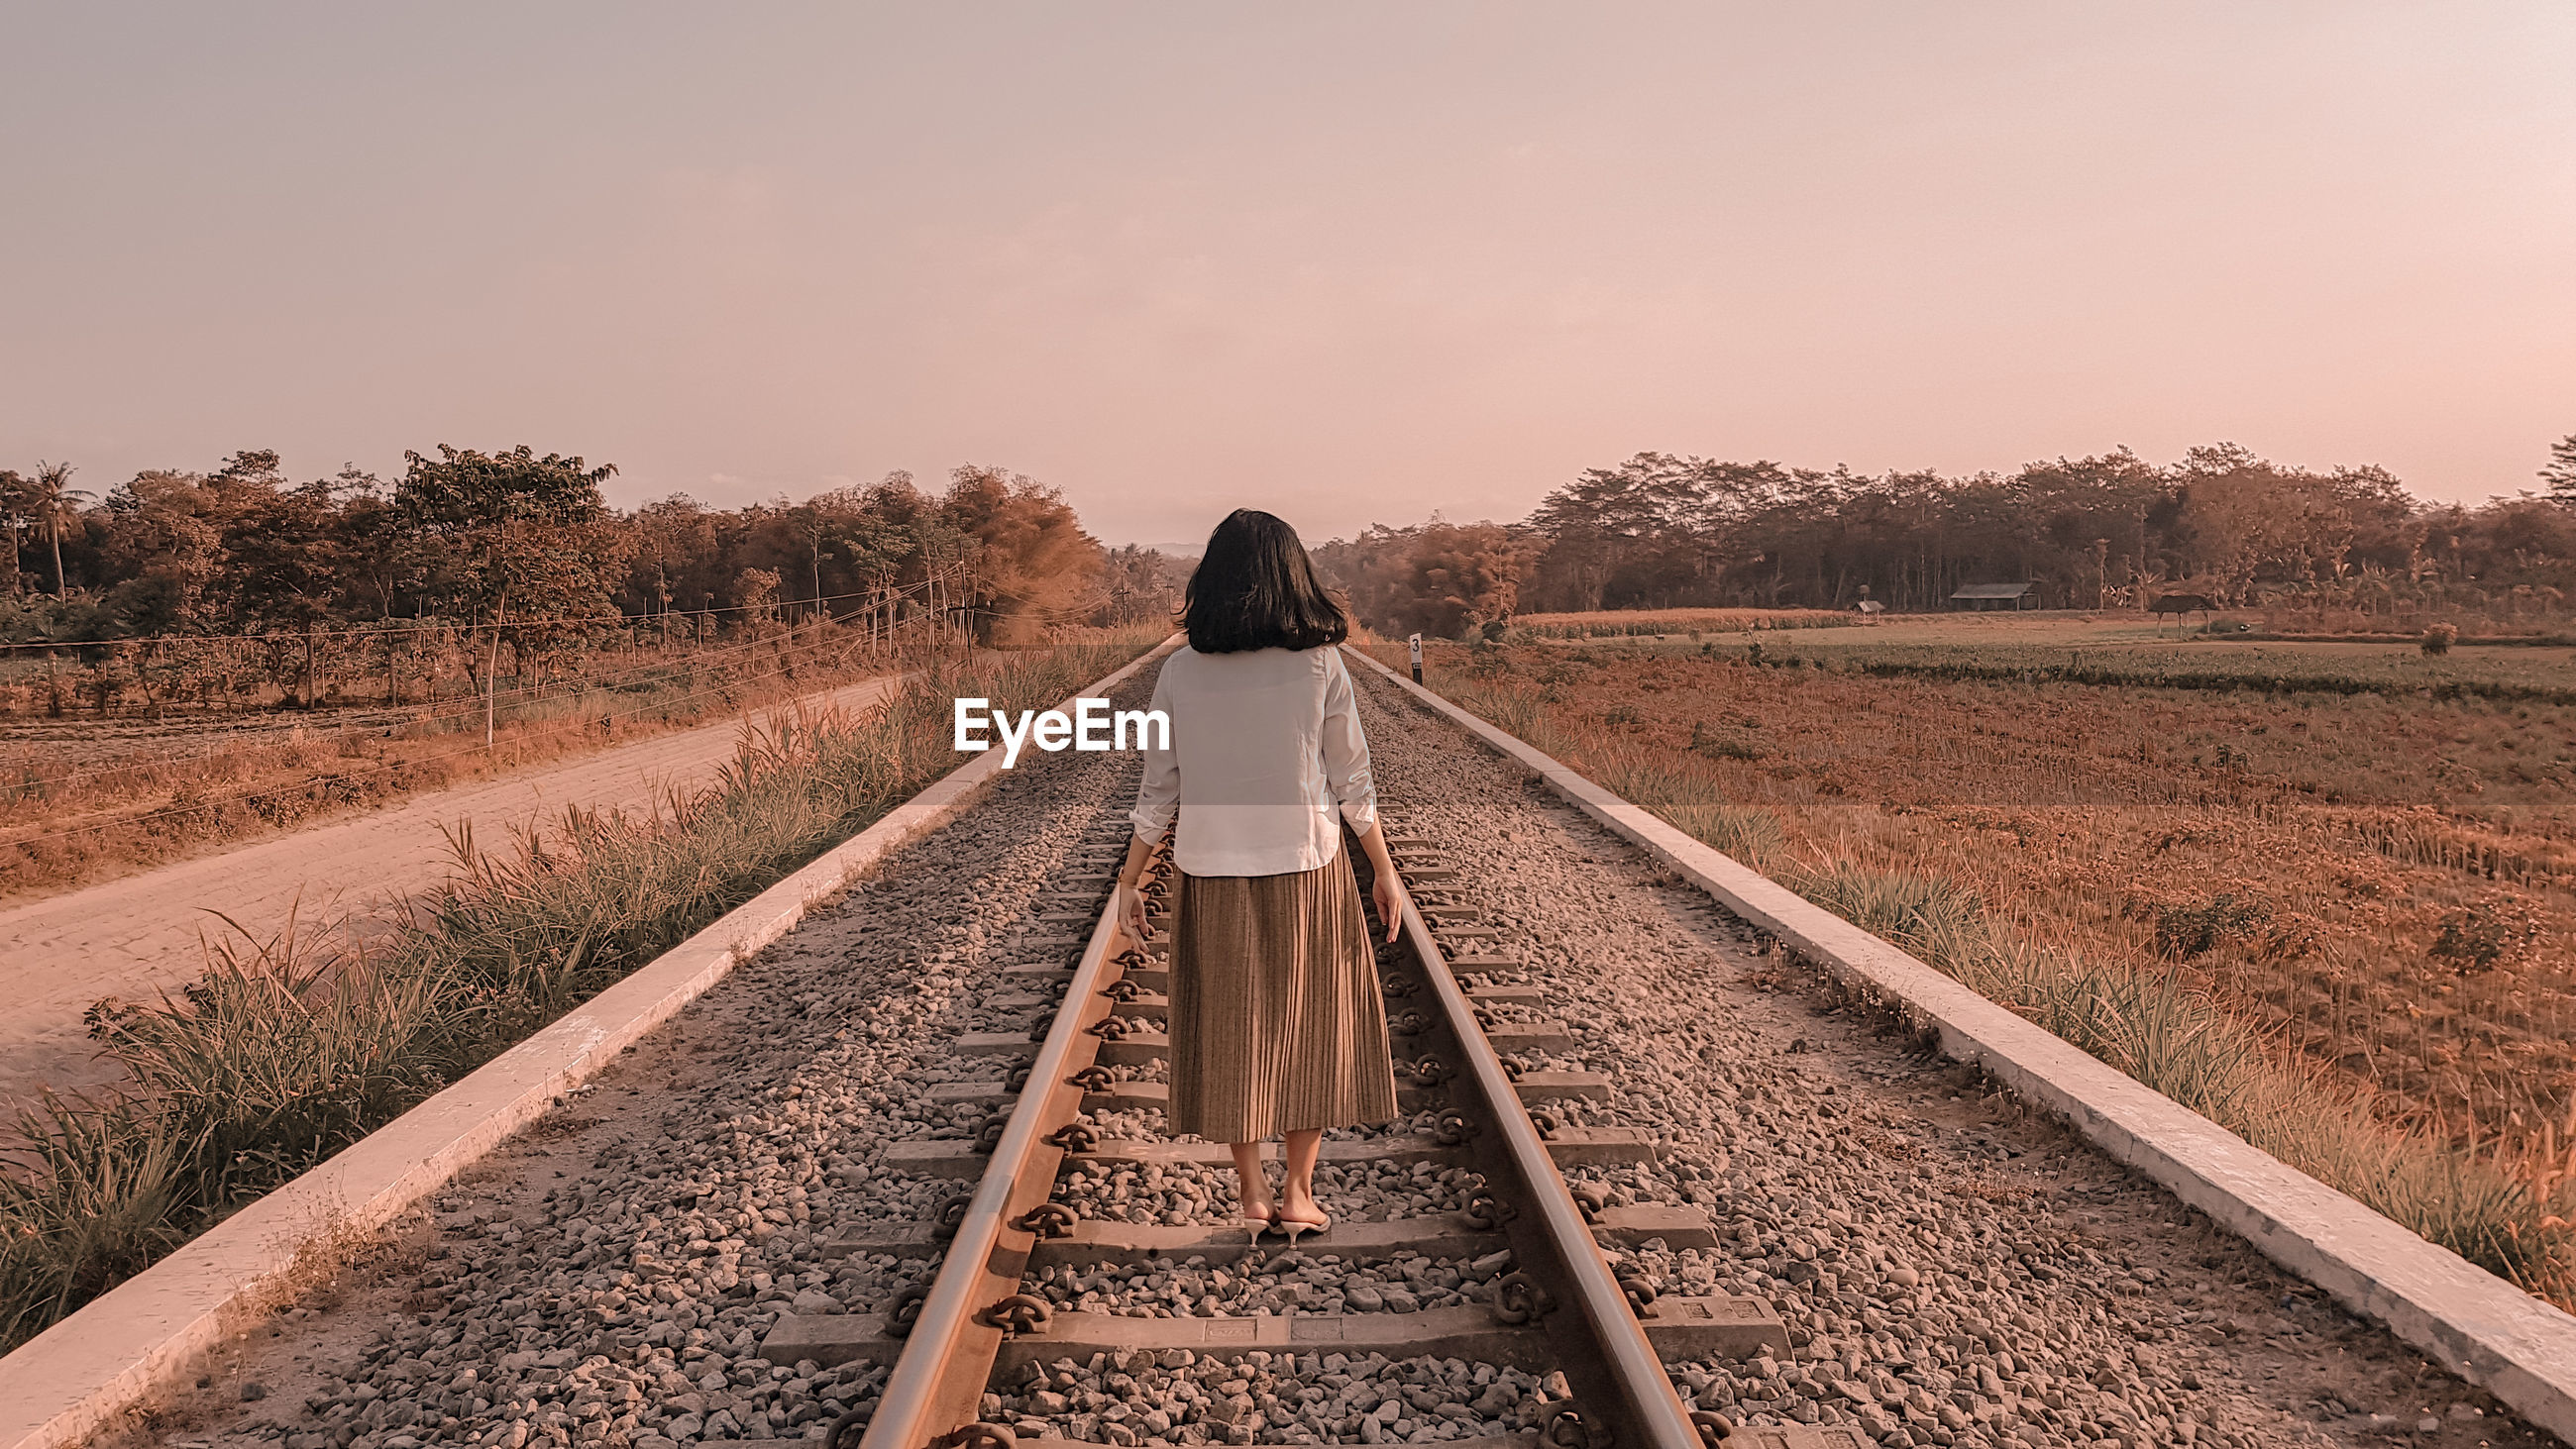 Rear view of woman walking on railroad track against clear sky